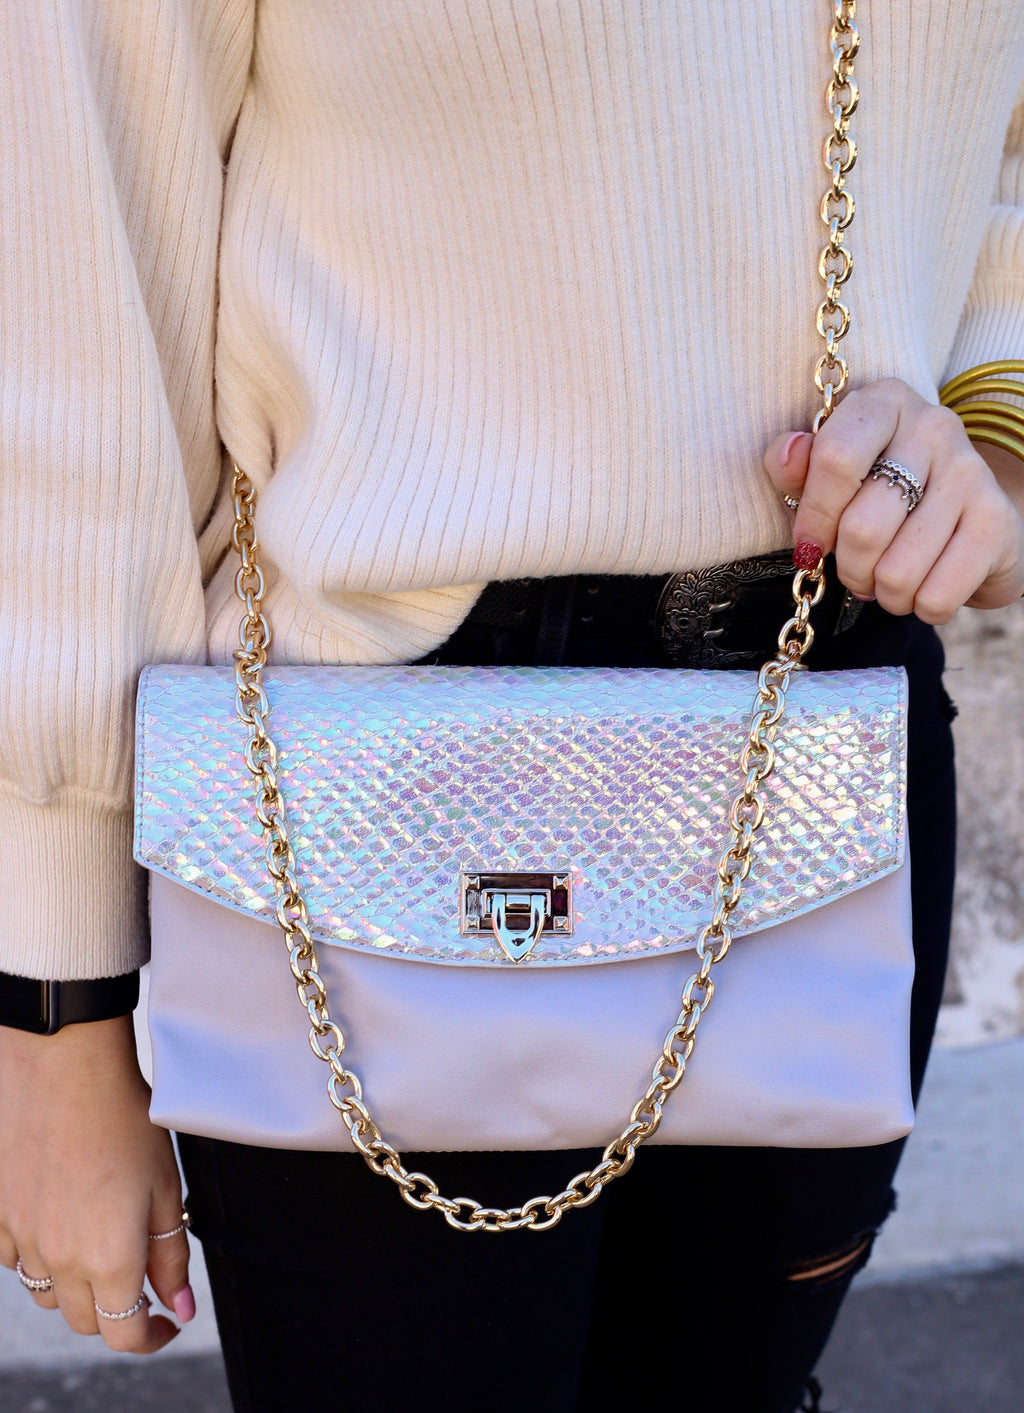 Kate Mermaid Hologram Crossbody - Caroline Hill